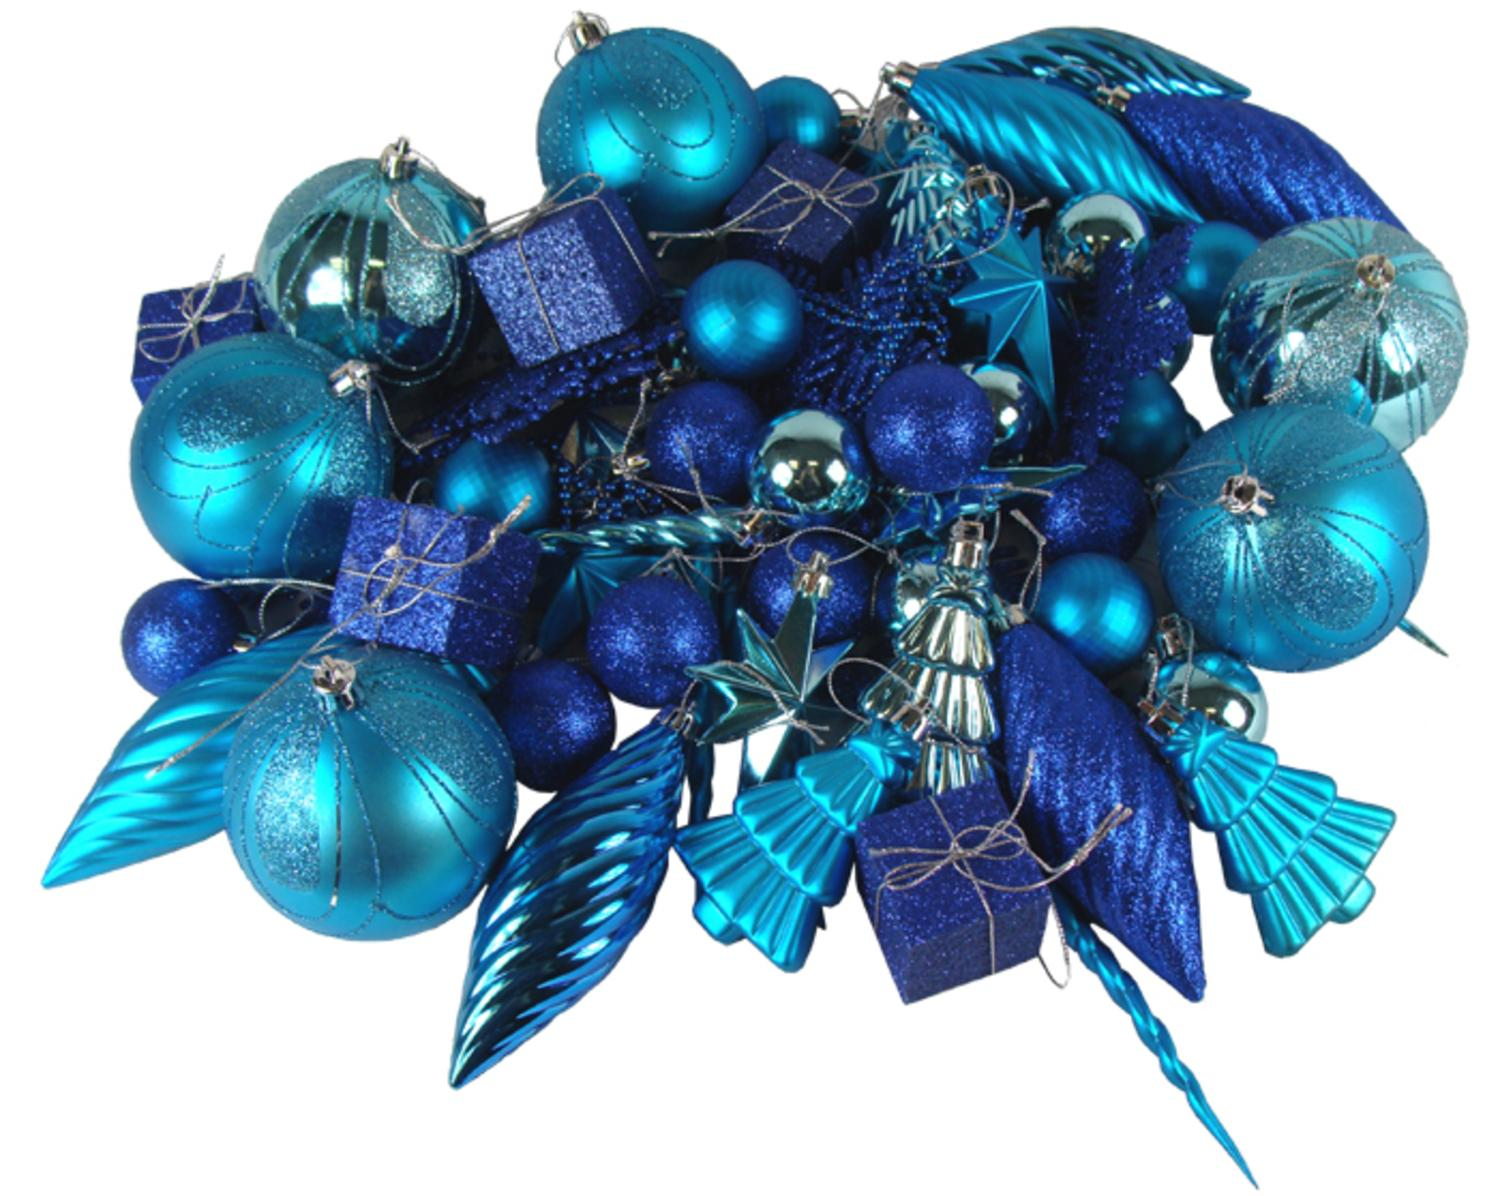 125 Piece Club Pack Of Shatterproof Regal Peacock Blue Christmas Ornaments